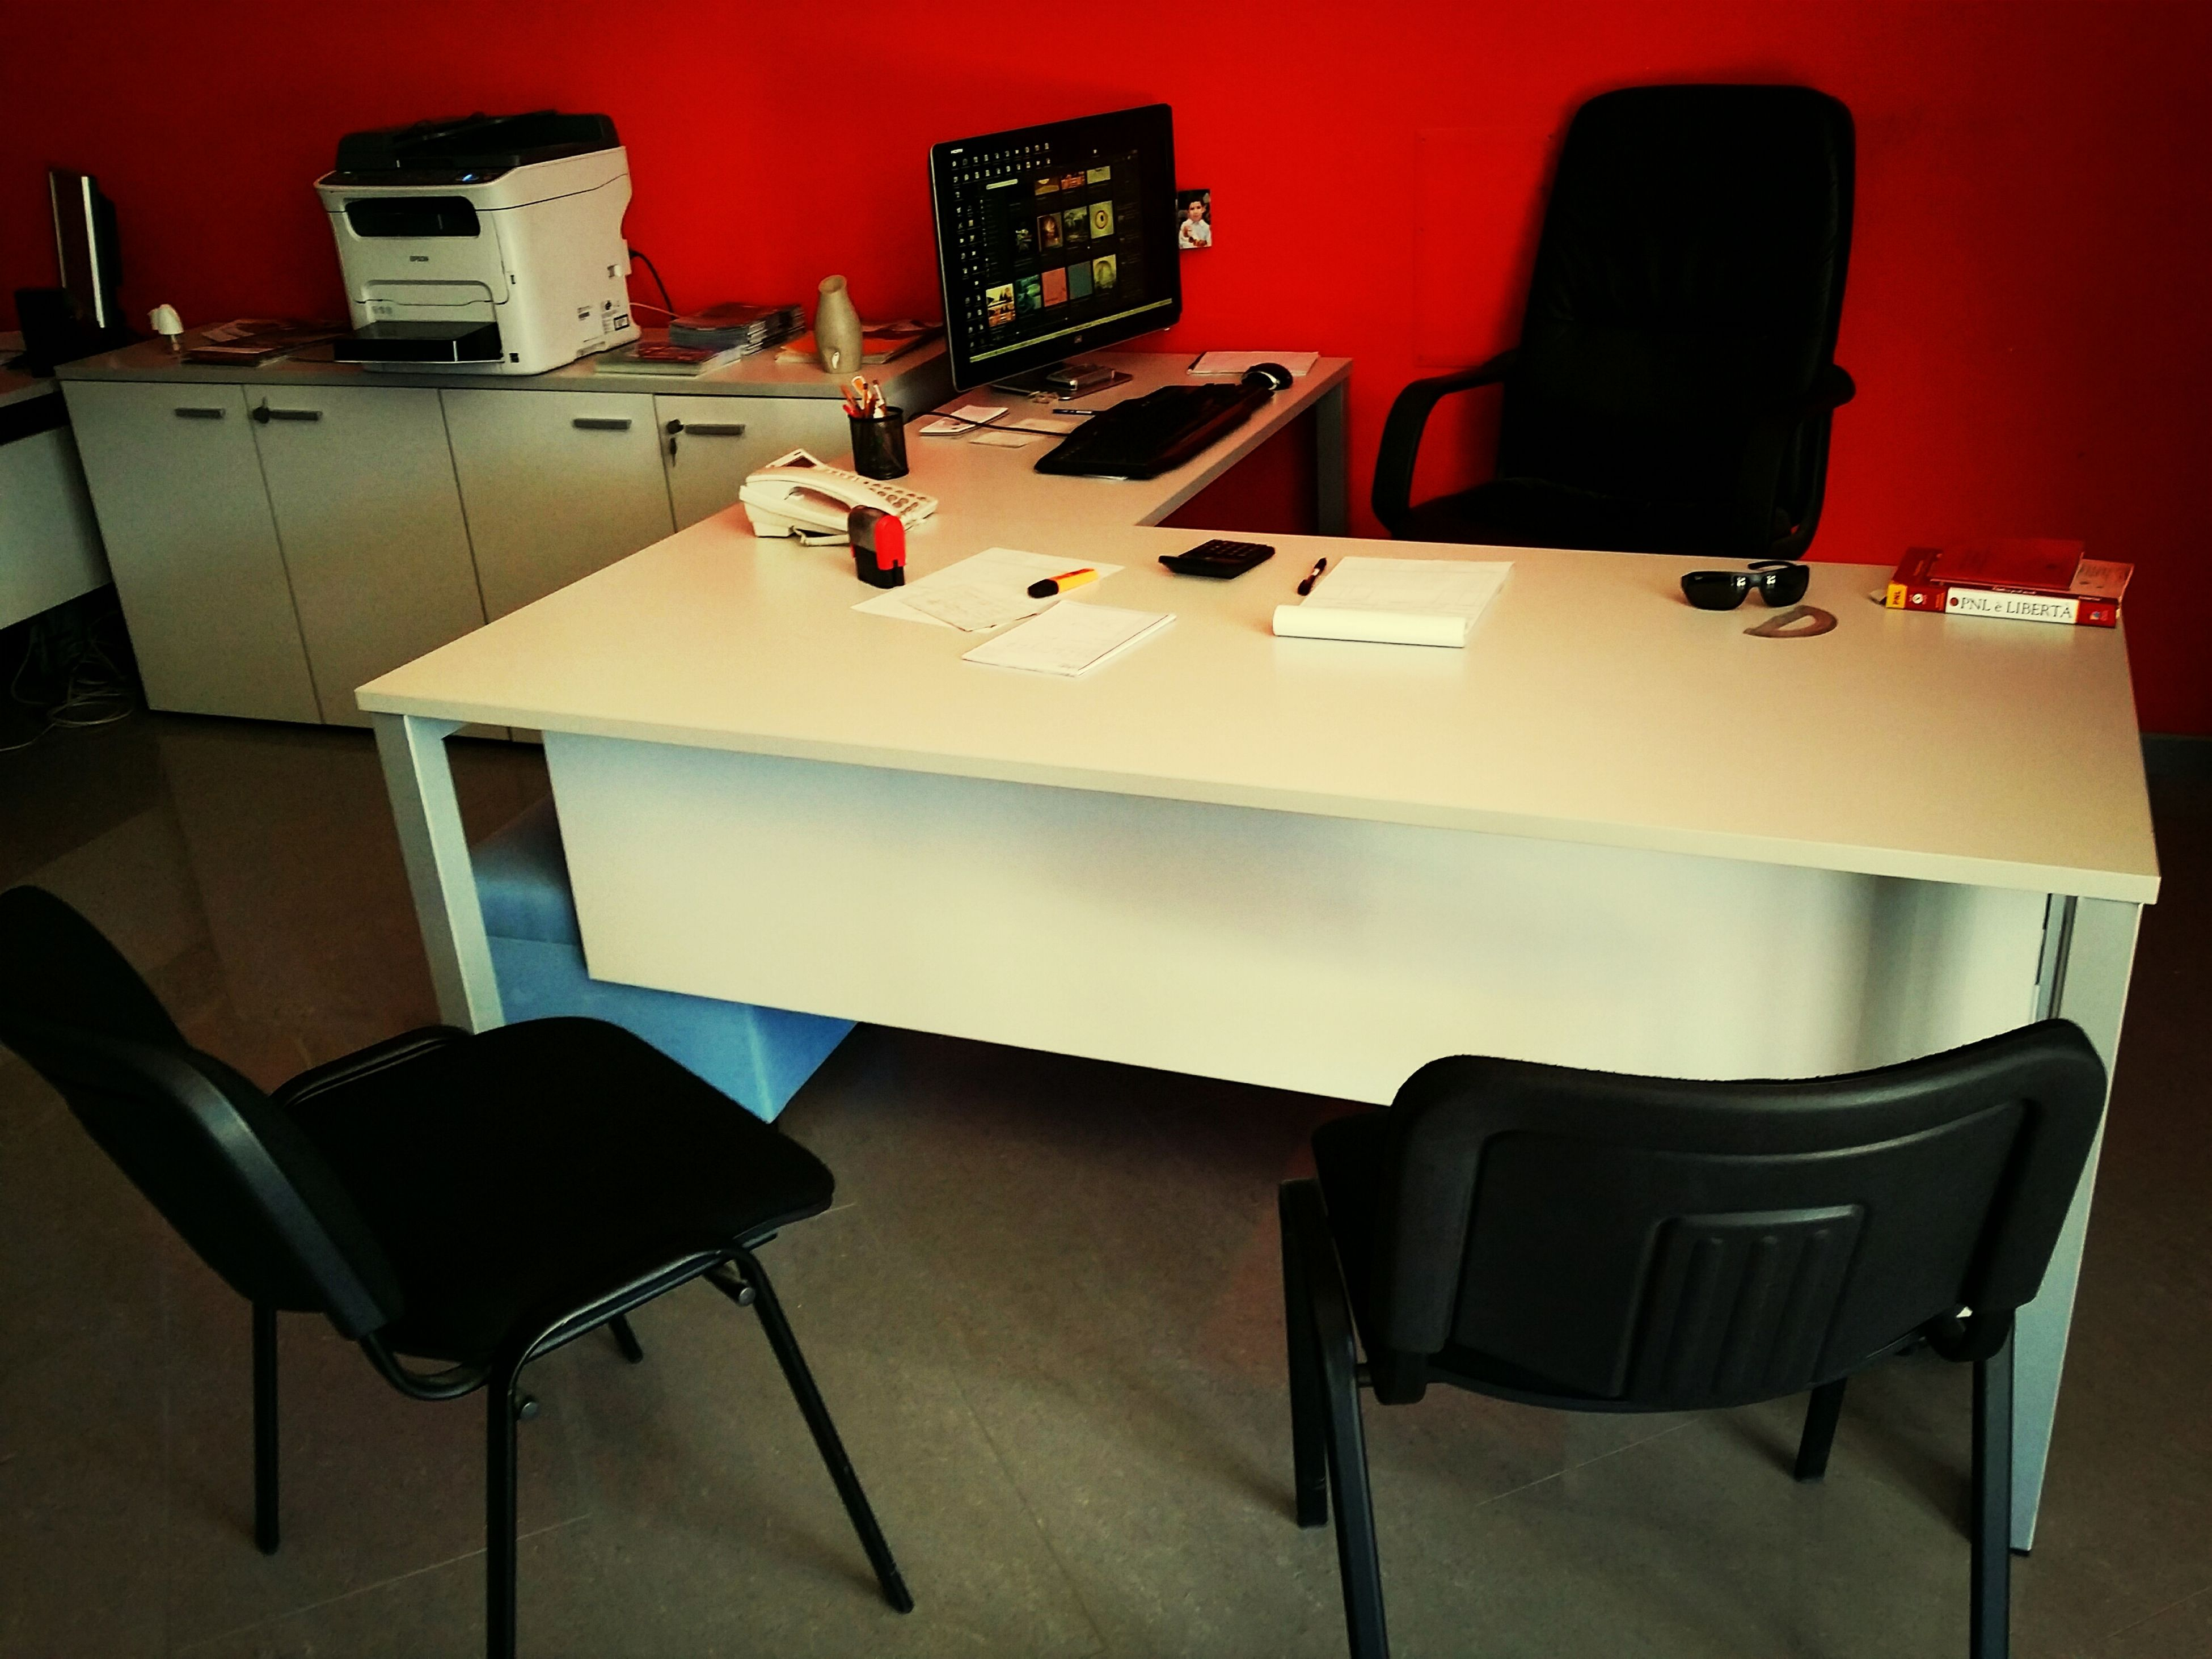 indoors, chair, absence, table, empty, furniture, seat, desk, office, restaurant, home interior, arrangement, home showcase interior, in a row, sofa, arts culture and entertainment, book, no people, modern, technology